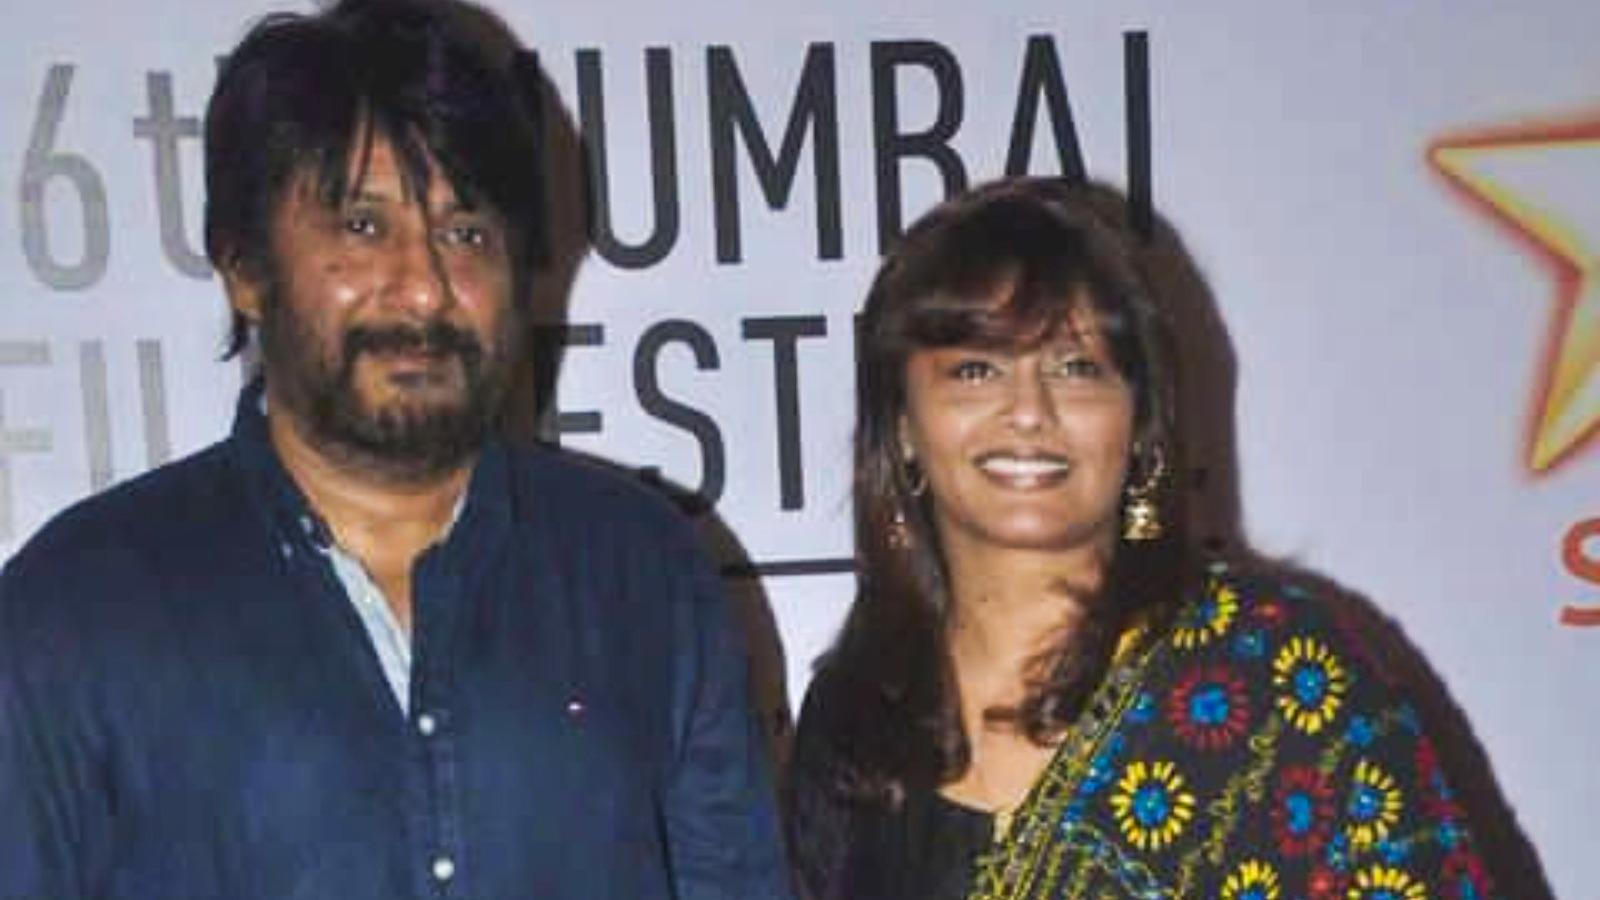 pallavi-joshi-husband-vivek-agnihotri-launch-initiatives-for-unemployed-actors-and-children-who-have-lost-their-parents-amid-covid-19-crisis